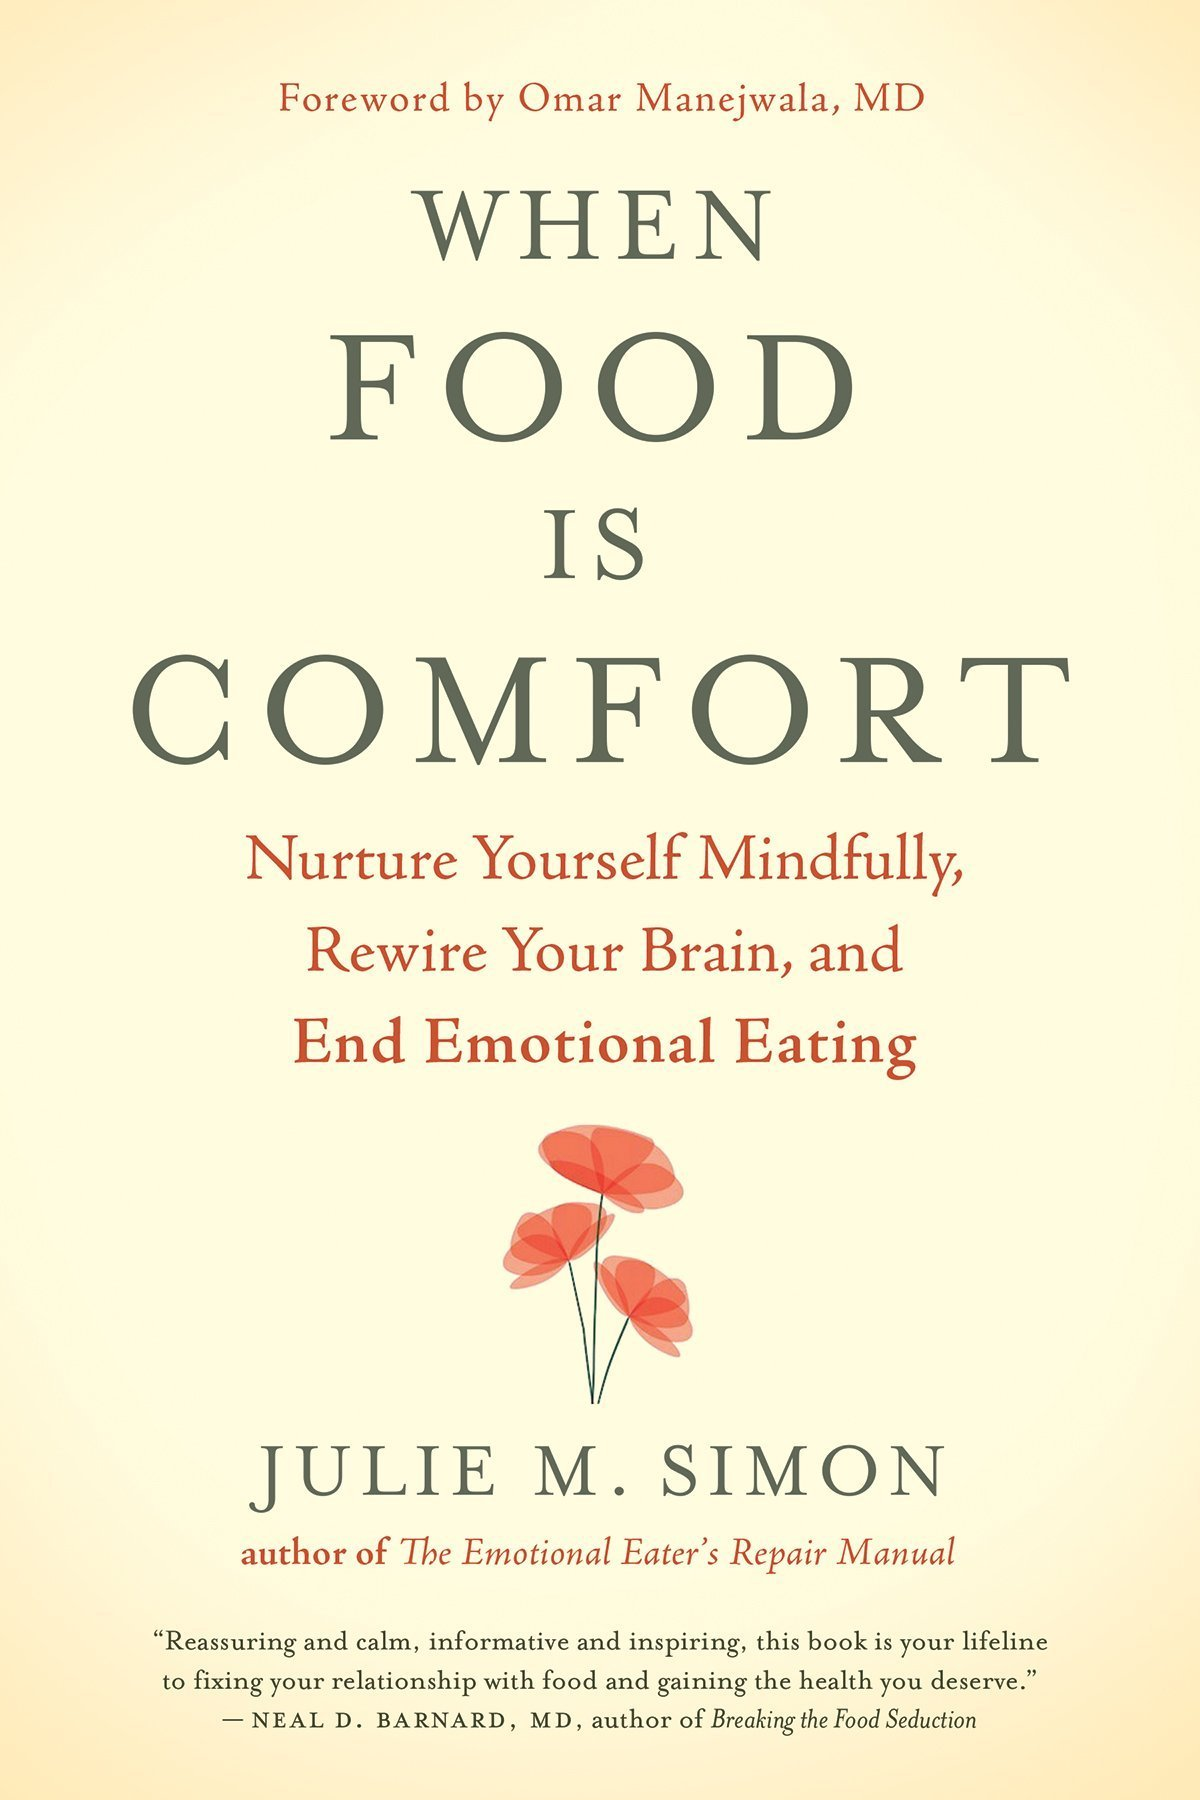 When Food Comfort Mindfully Emotional product image